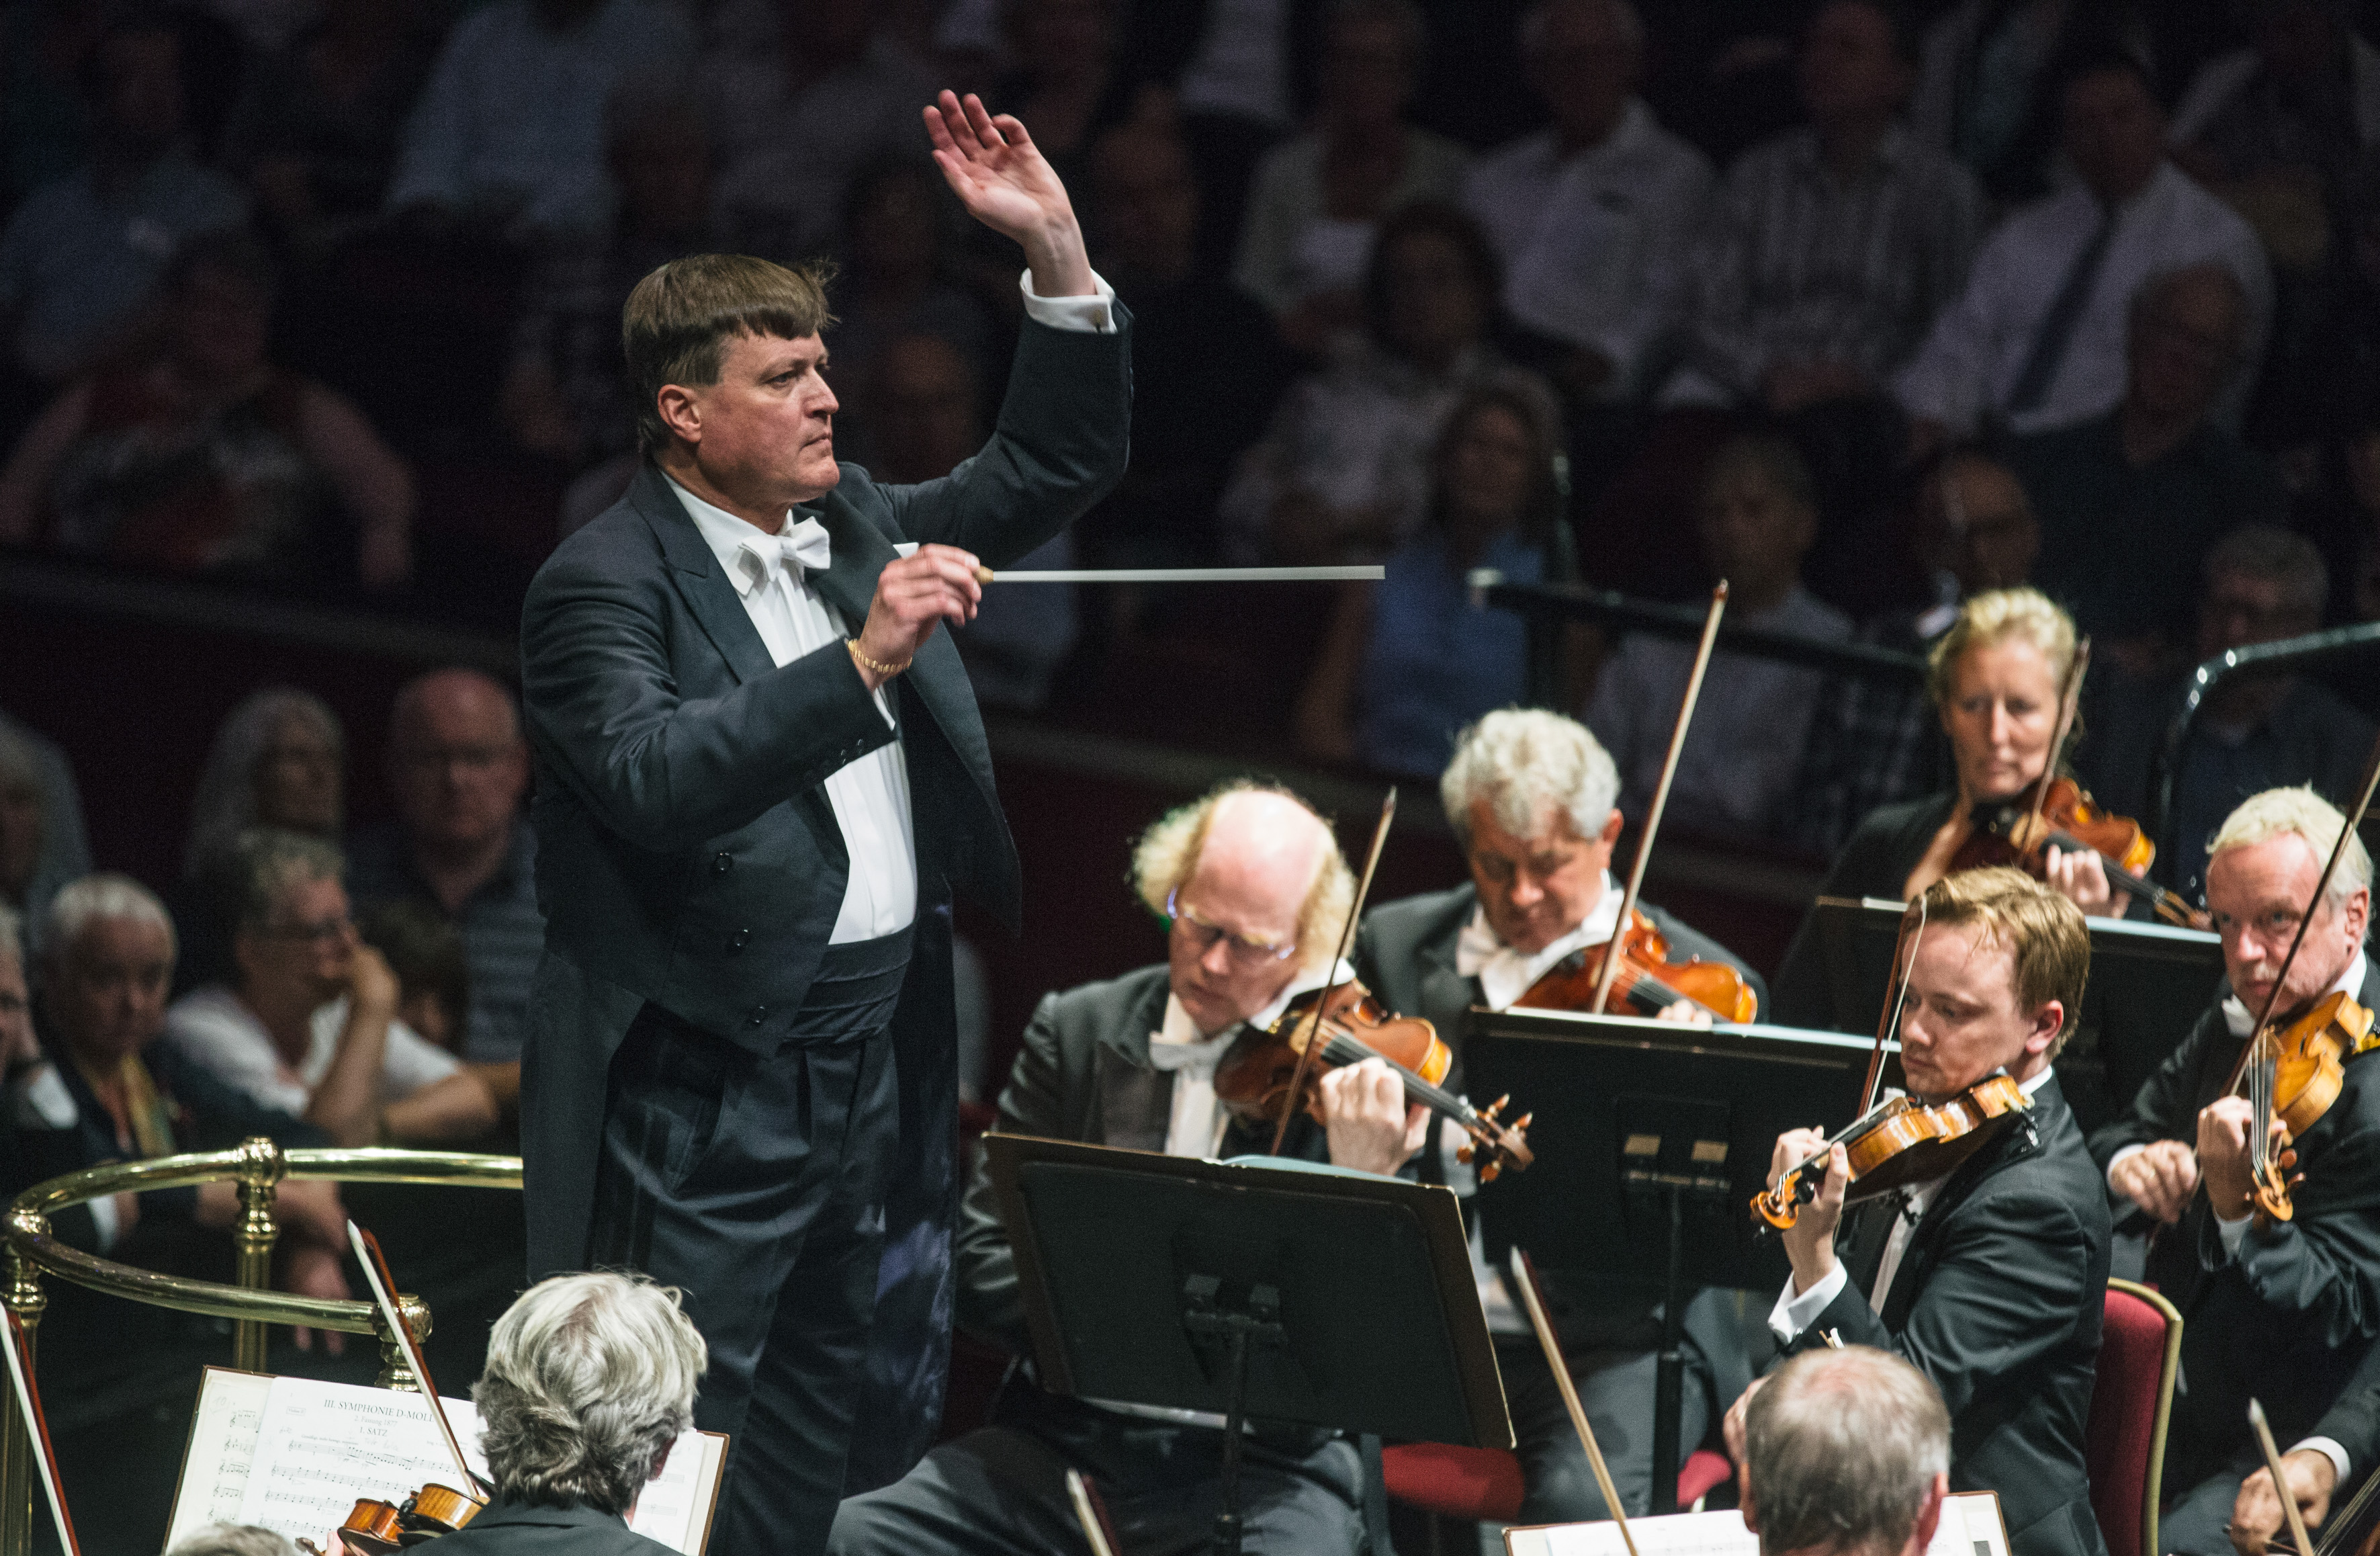 Christian Thielemann conducts the Staatskapelle Dresden in Mozart and Bruckner at the BBC Prom 2016Photograph: BBC/Oliver Killig